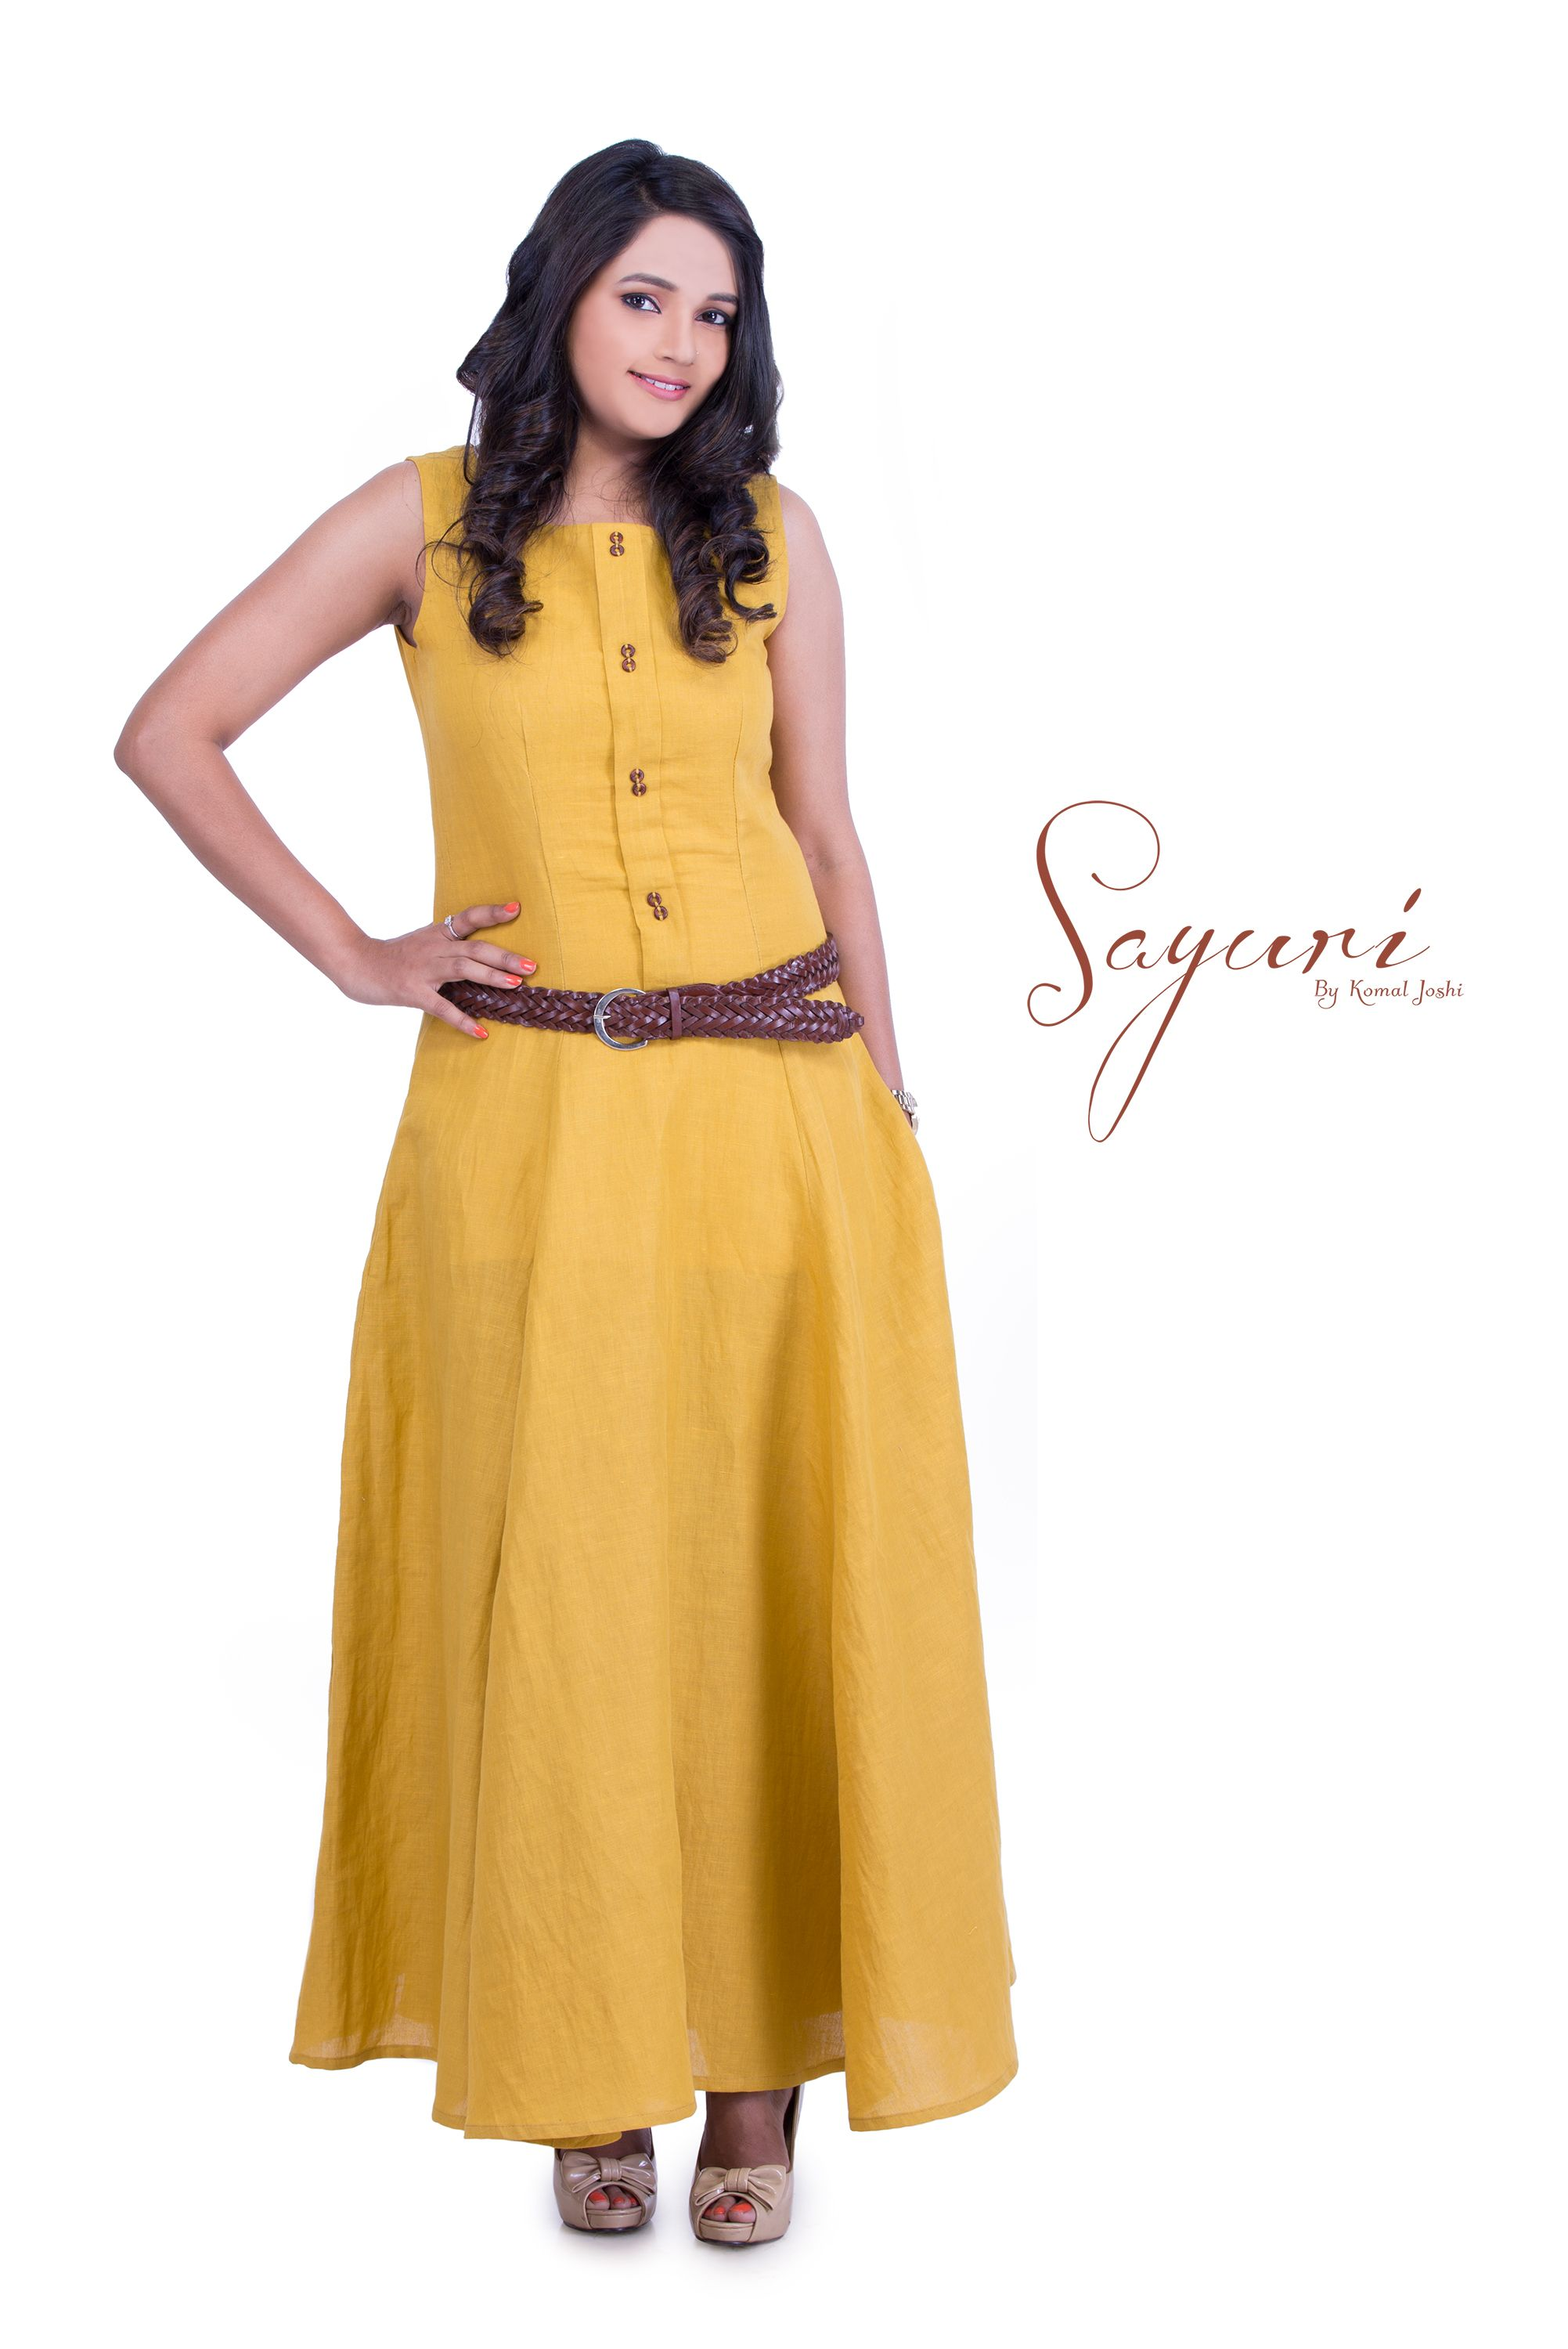 839daff758a Cotton Linen Ocar long dress worn with a belt. Find this Pin and more on Sayuri  Design Studio ...